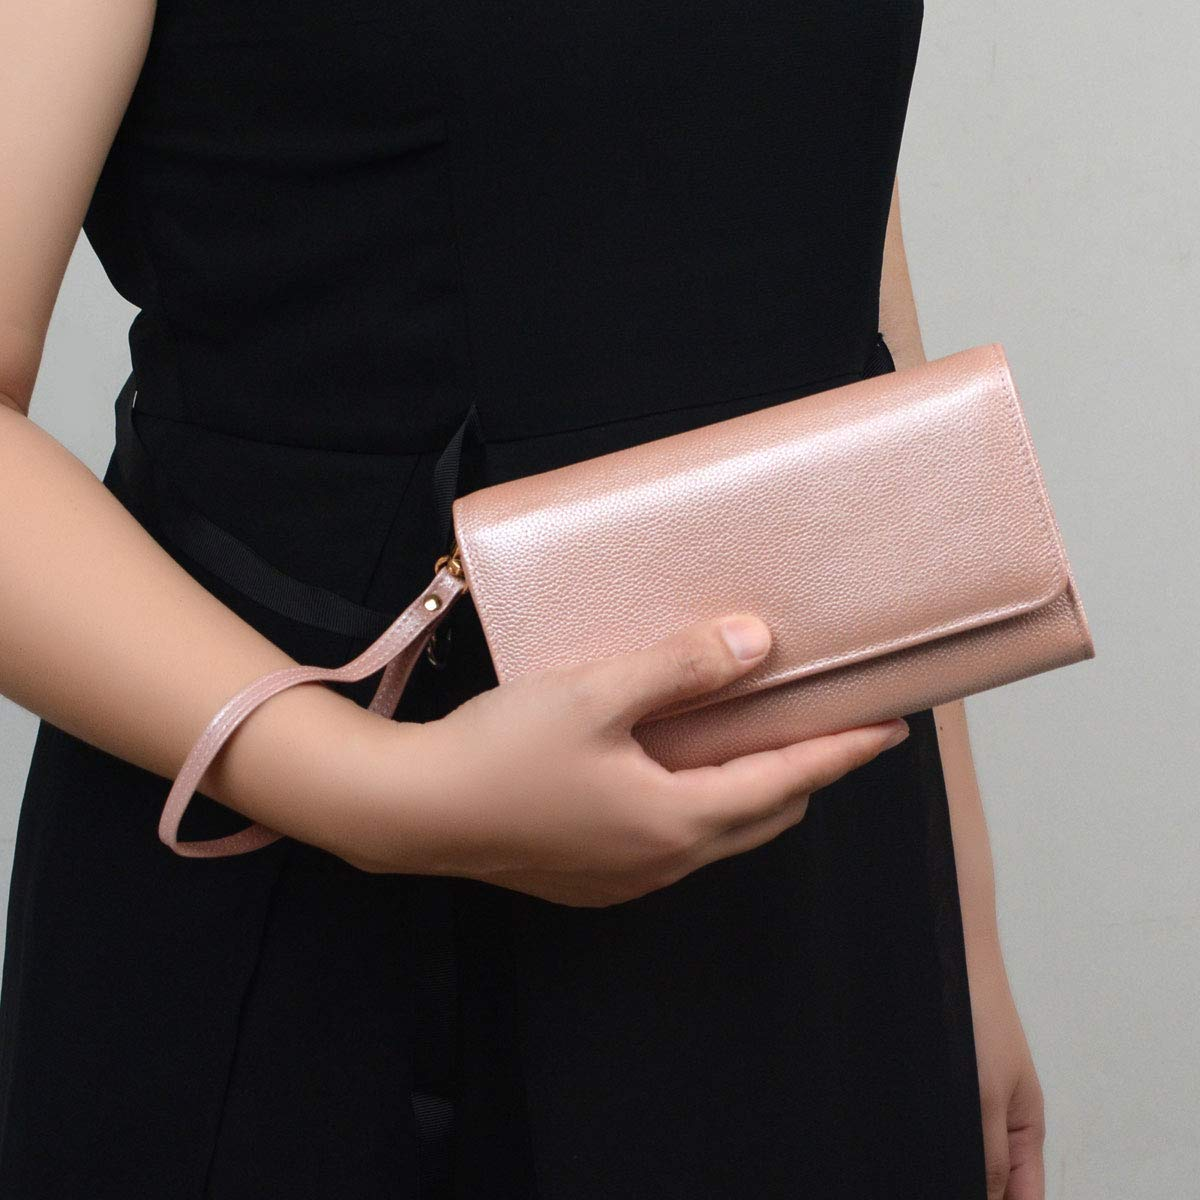 Women RFID Leather Trifold Wallet Cossbody Purse Clutch with Chain Strap (Rose Gold) by Bveyzi (Image #3)